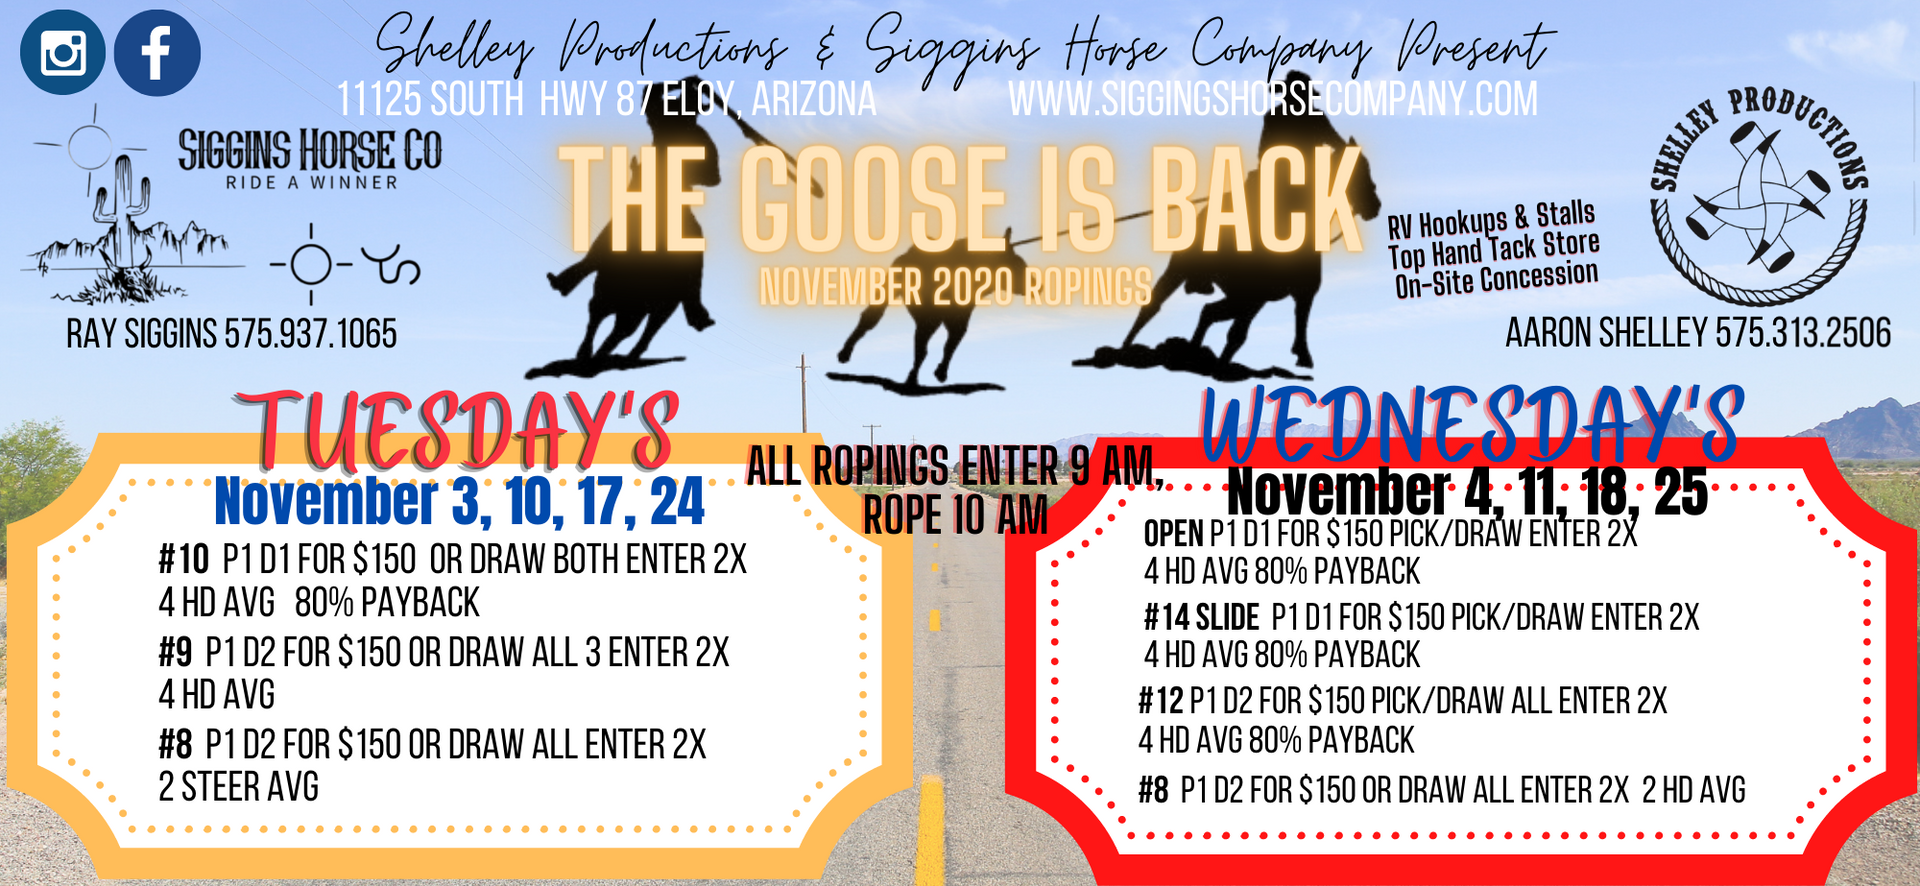 Copy of The Goose is back jackpot mag (1